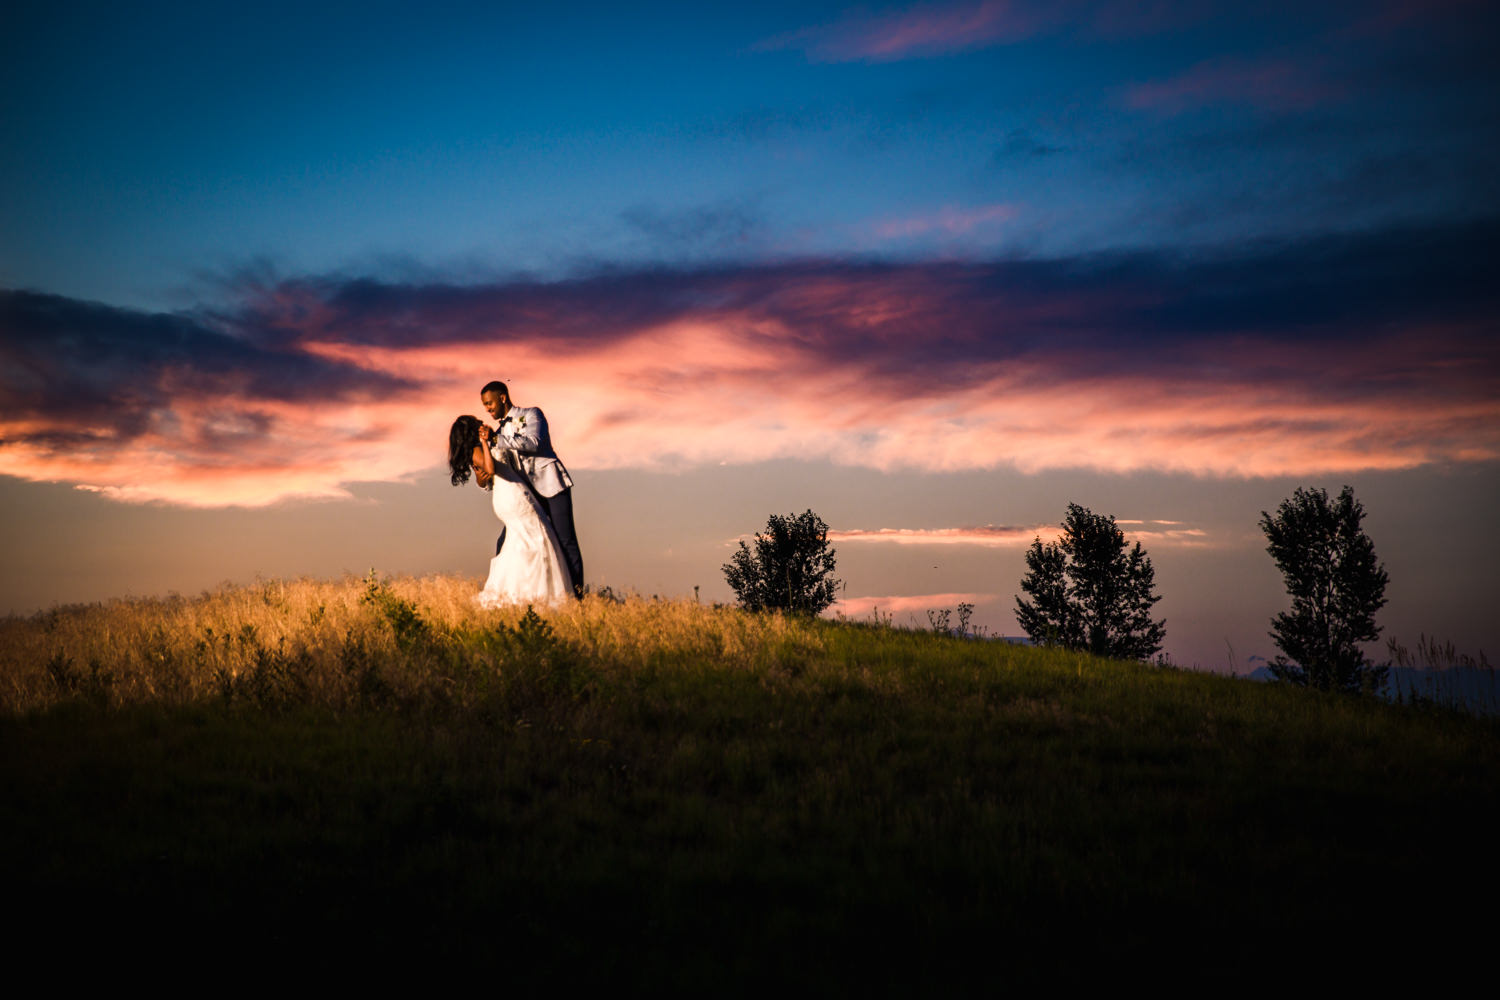 Rich and Paige's Wedding at Saddleback Golf Course in Firestone, Colorado